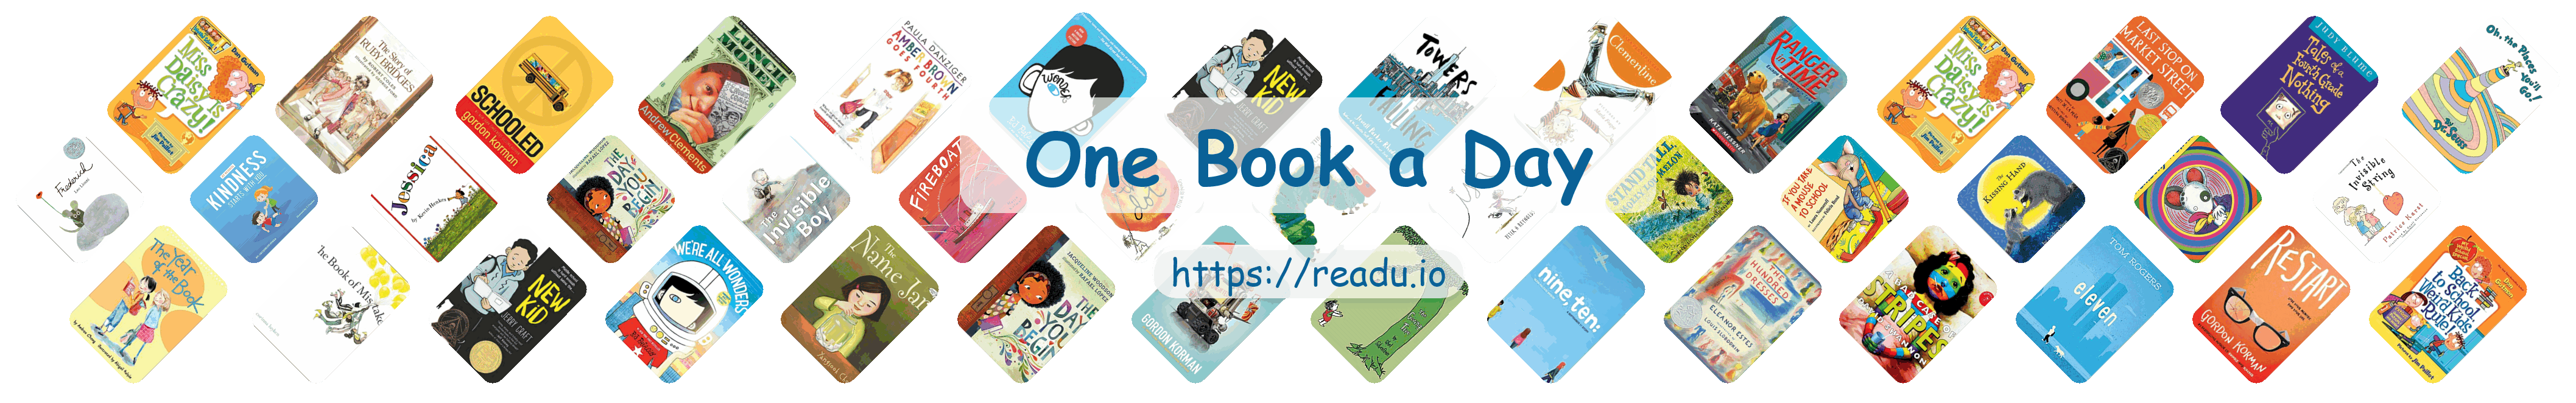 readu-one-book-a-day-sep-17.png